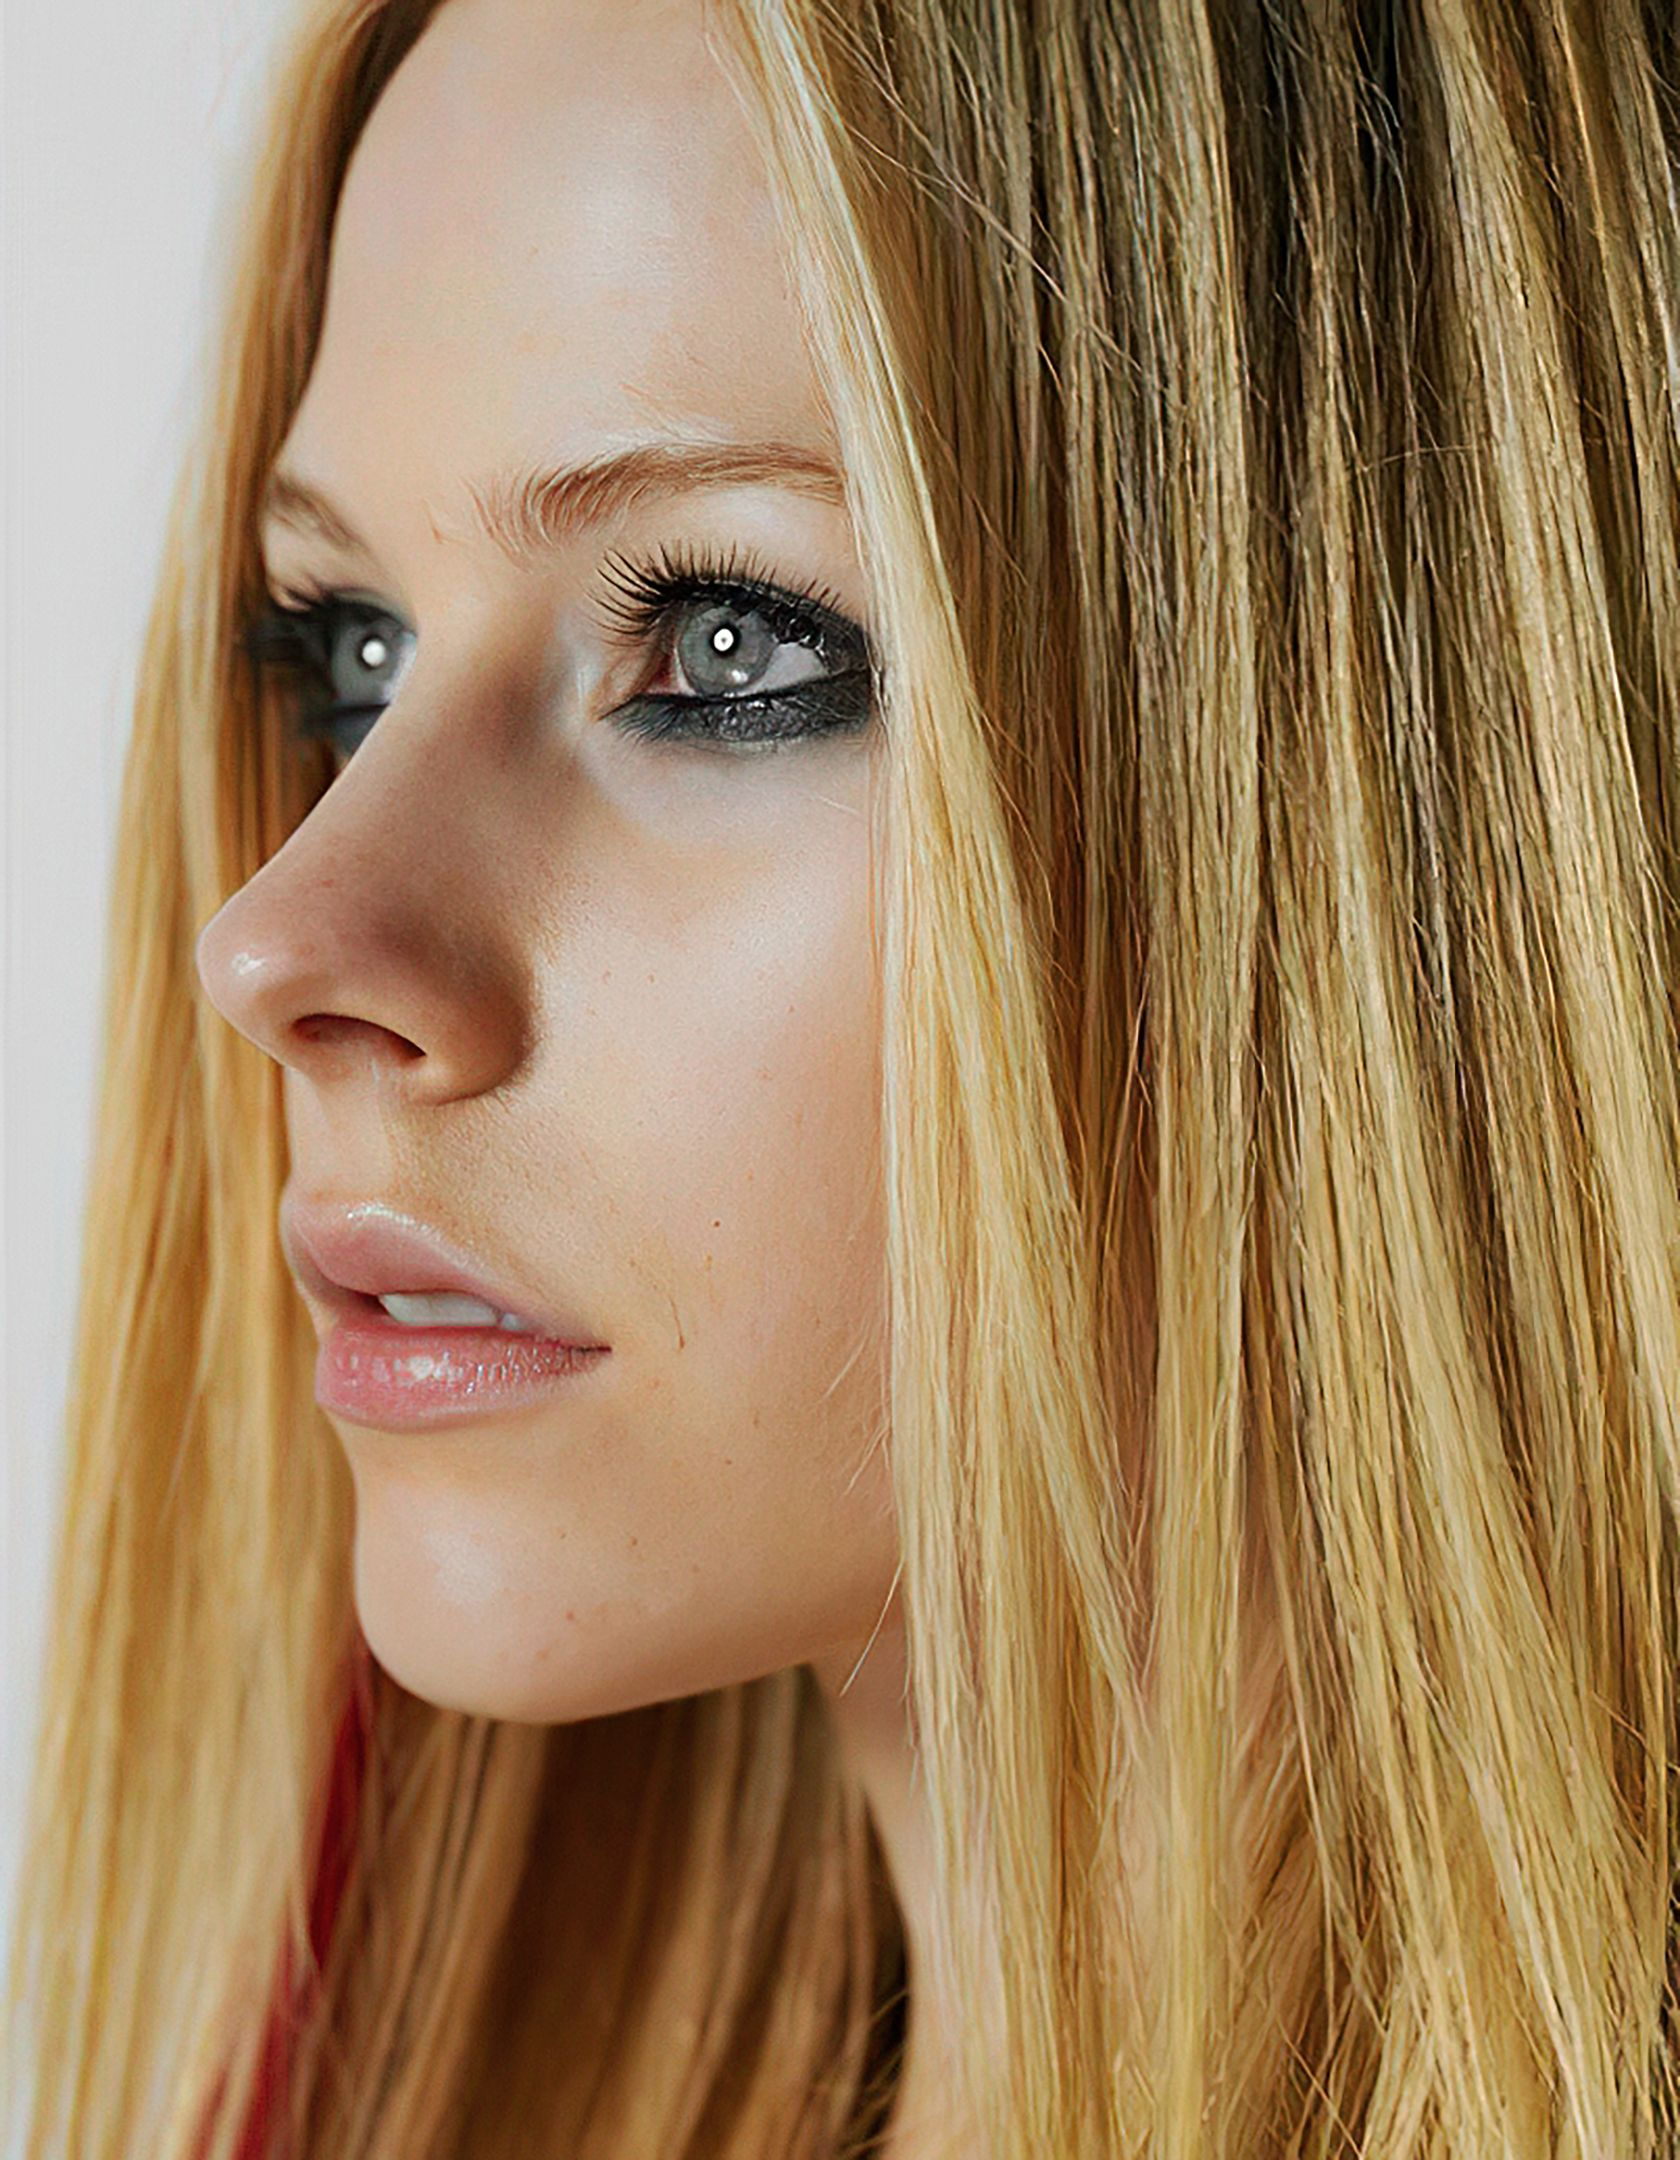 Pin by Scott Mills on Portraits in 2020 | Avril lavigne